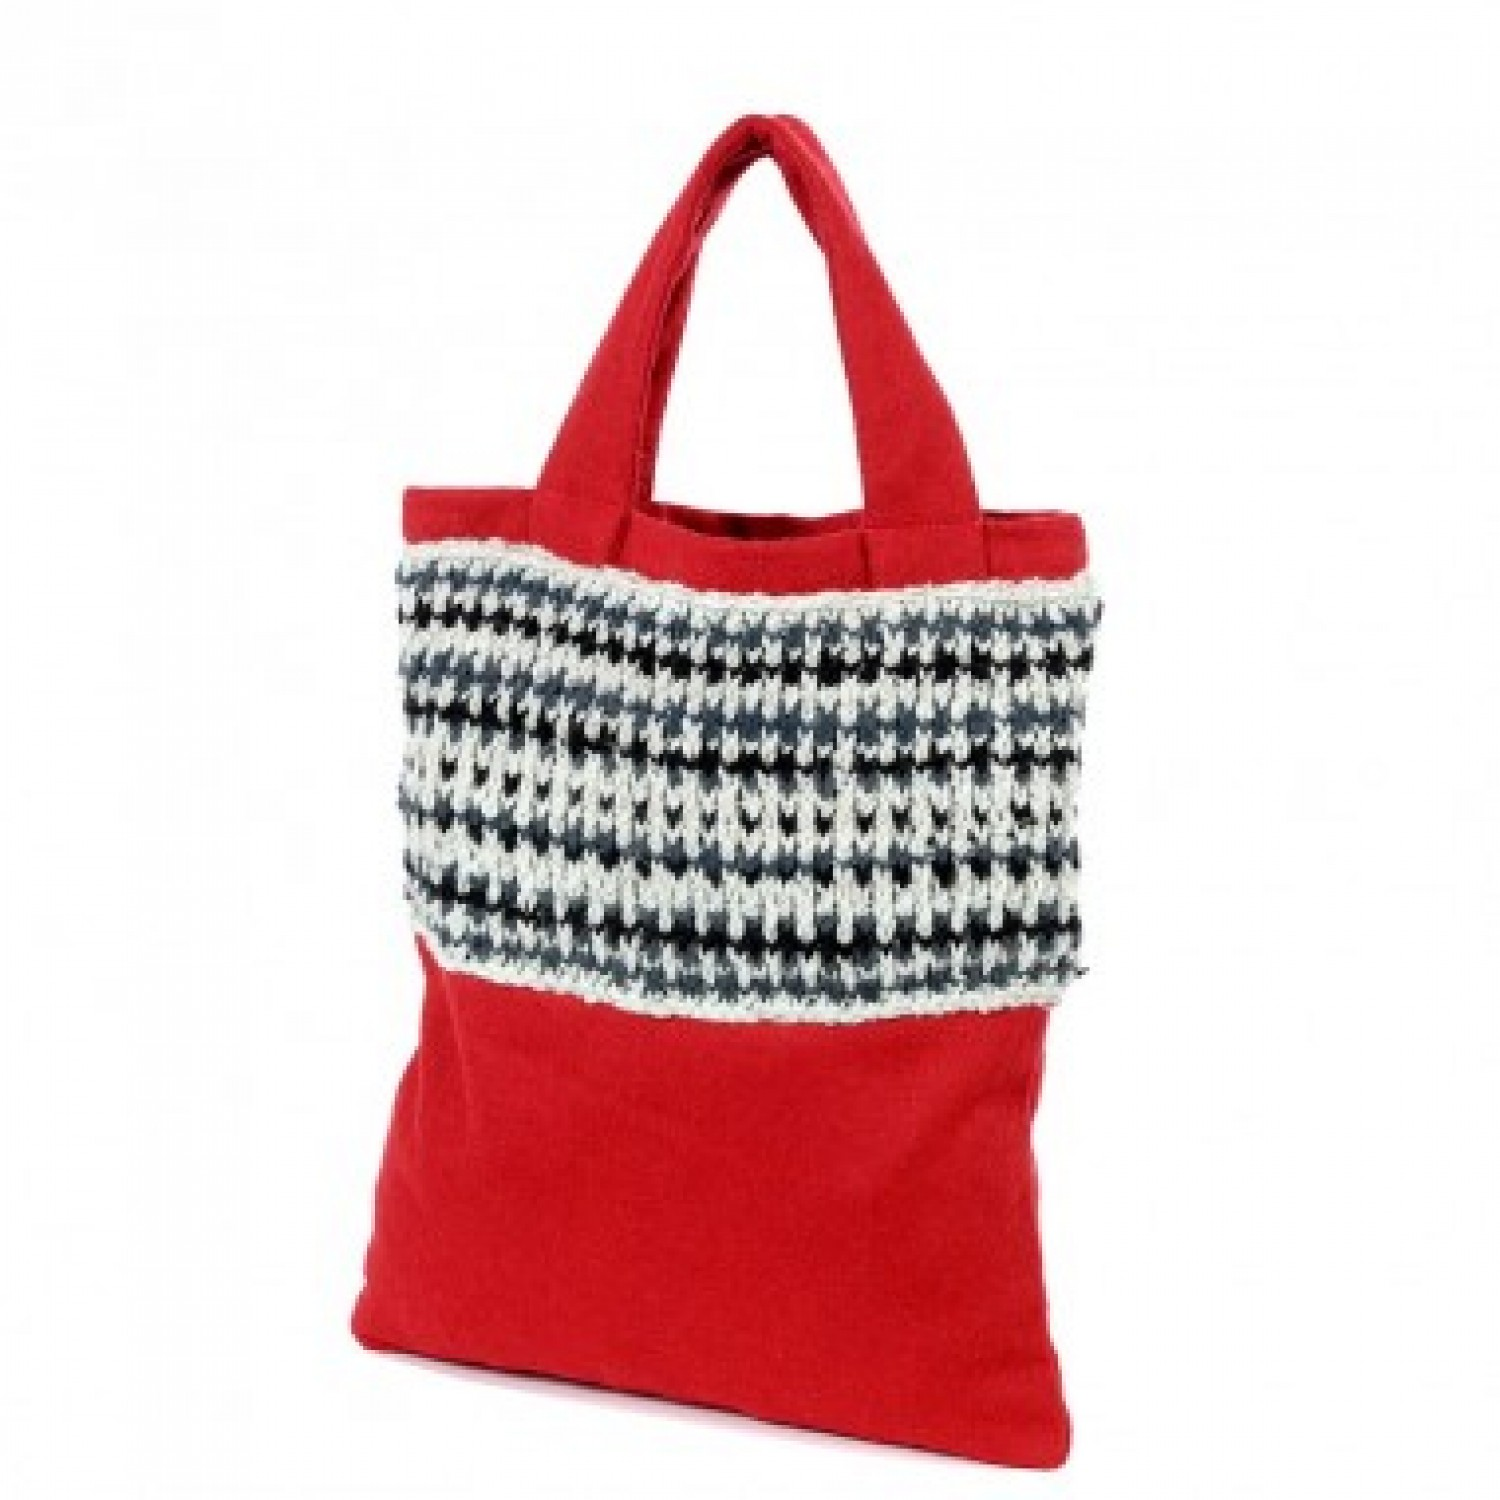 Upcycling Shopper aus roter Wolle + Filz